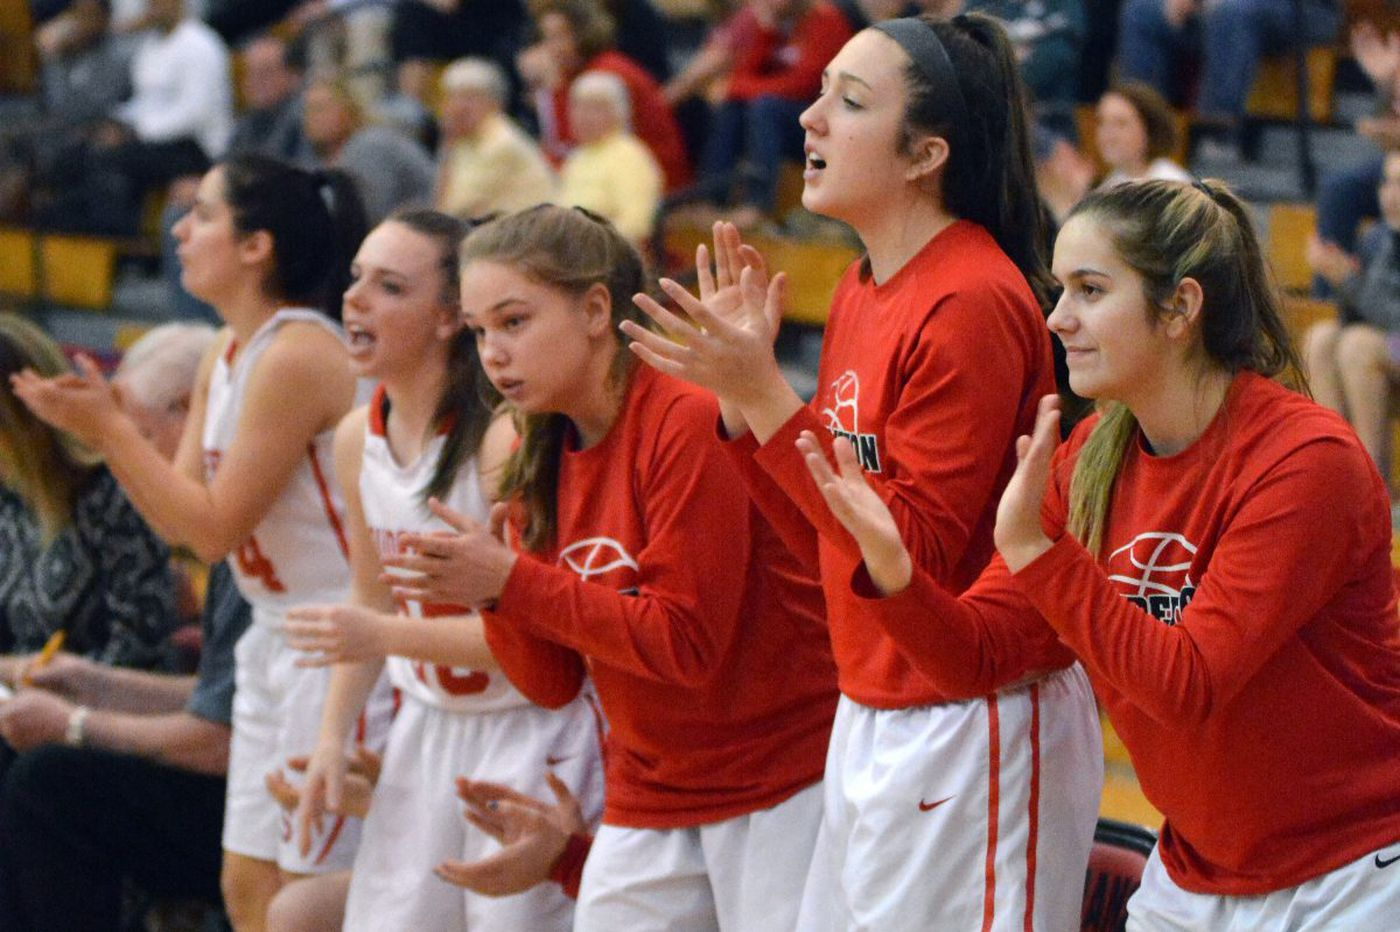 Previewing the Pa. girls' basketball state playoffs: Souderton is on a roll